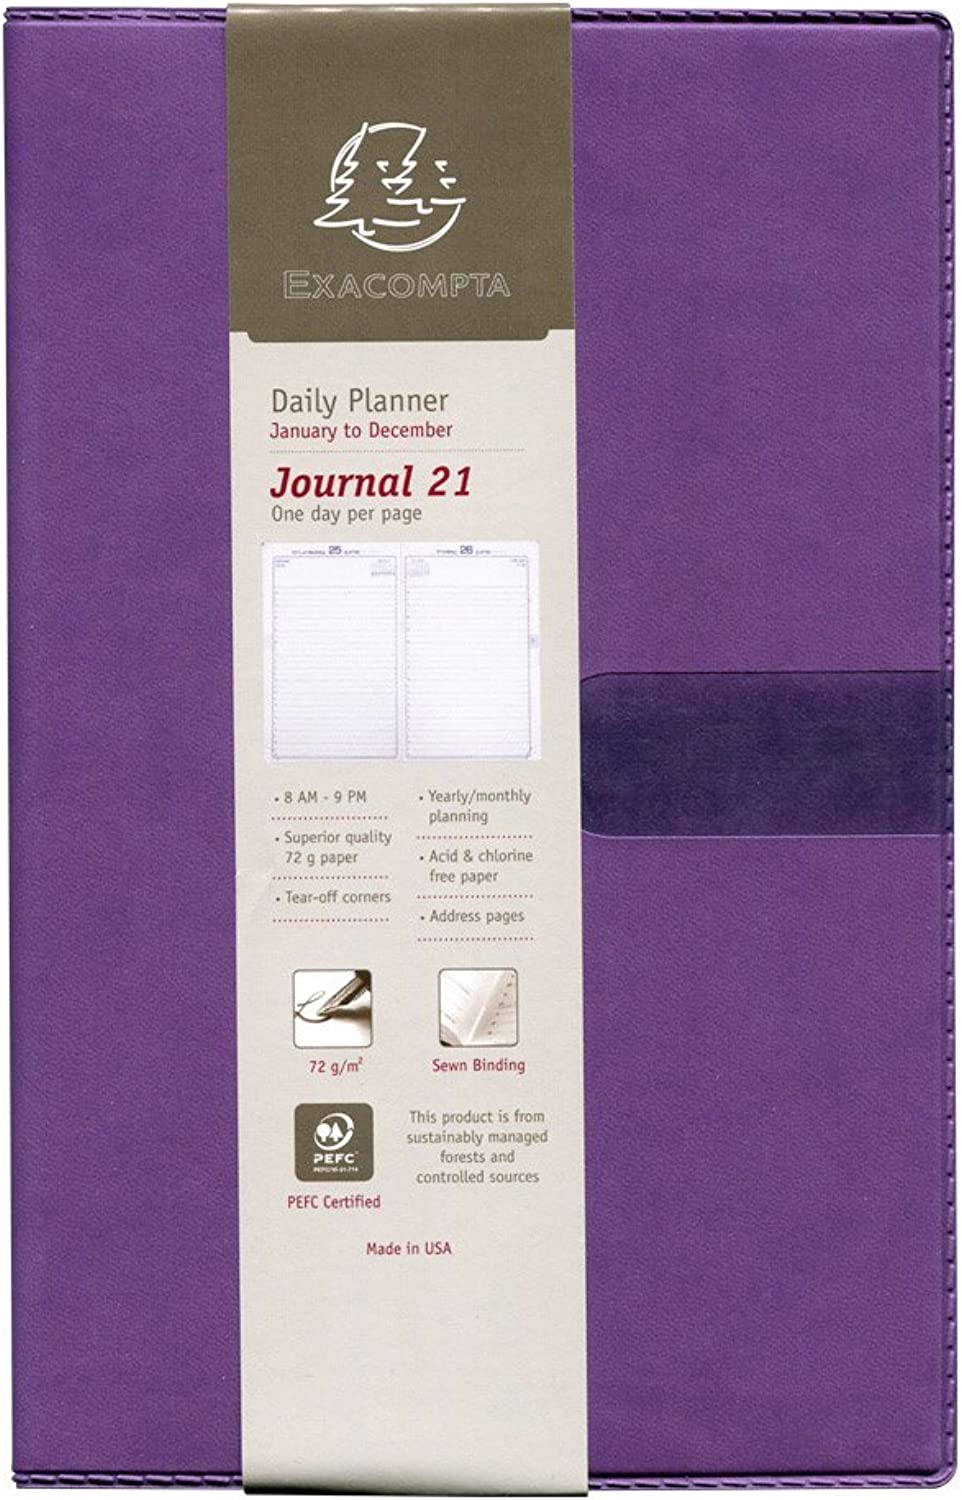 Quo Vadis 2019 Journal 21 Yearly Planner, Texas Cover, 5.25 by 8.25 inches, lila B07DQT312Y  | Marke